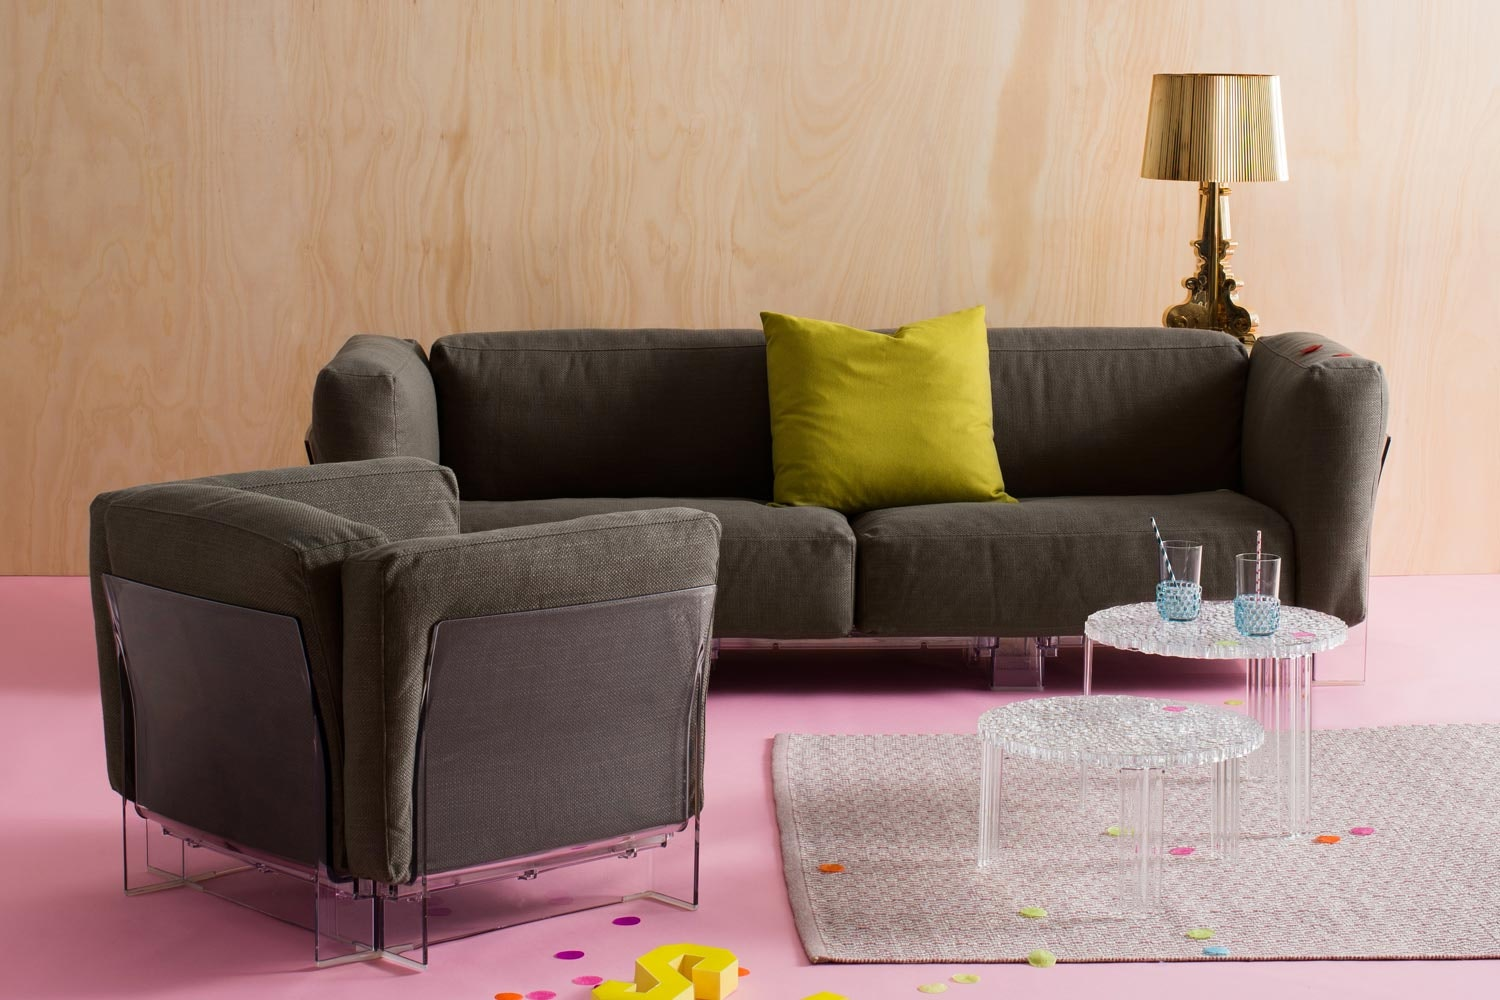 Complete Living 2 Package by Kartell